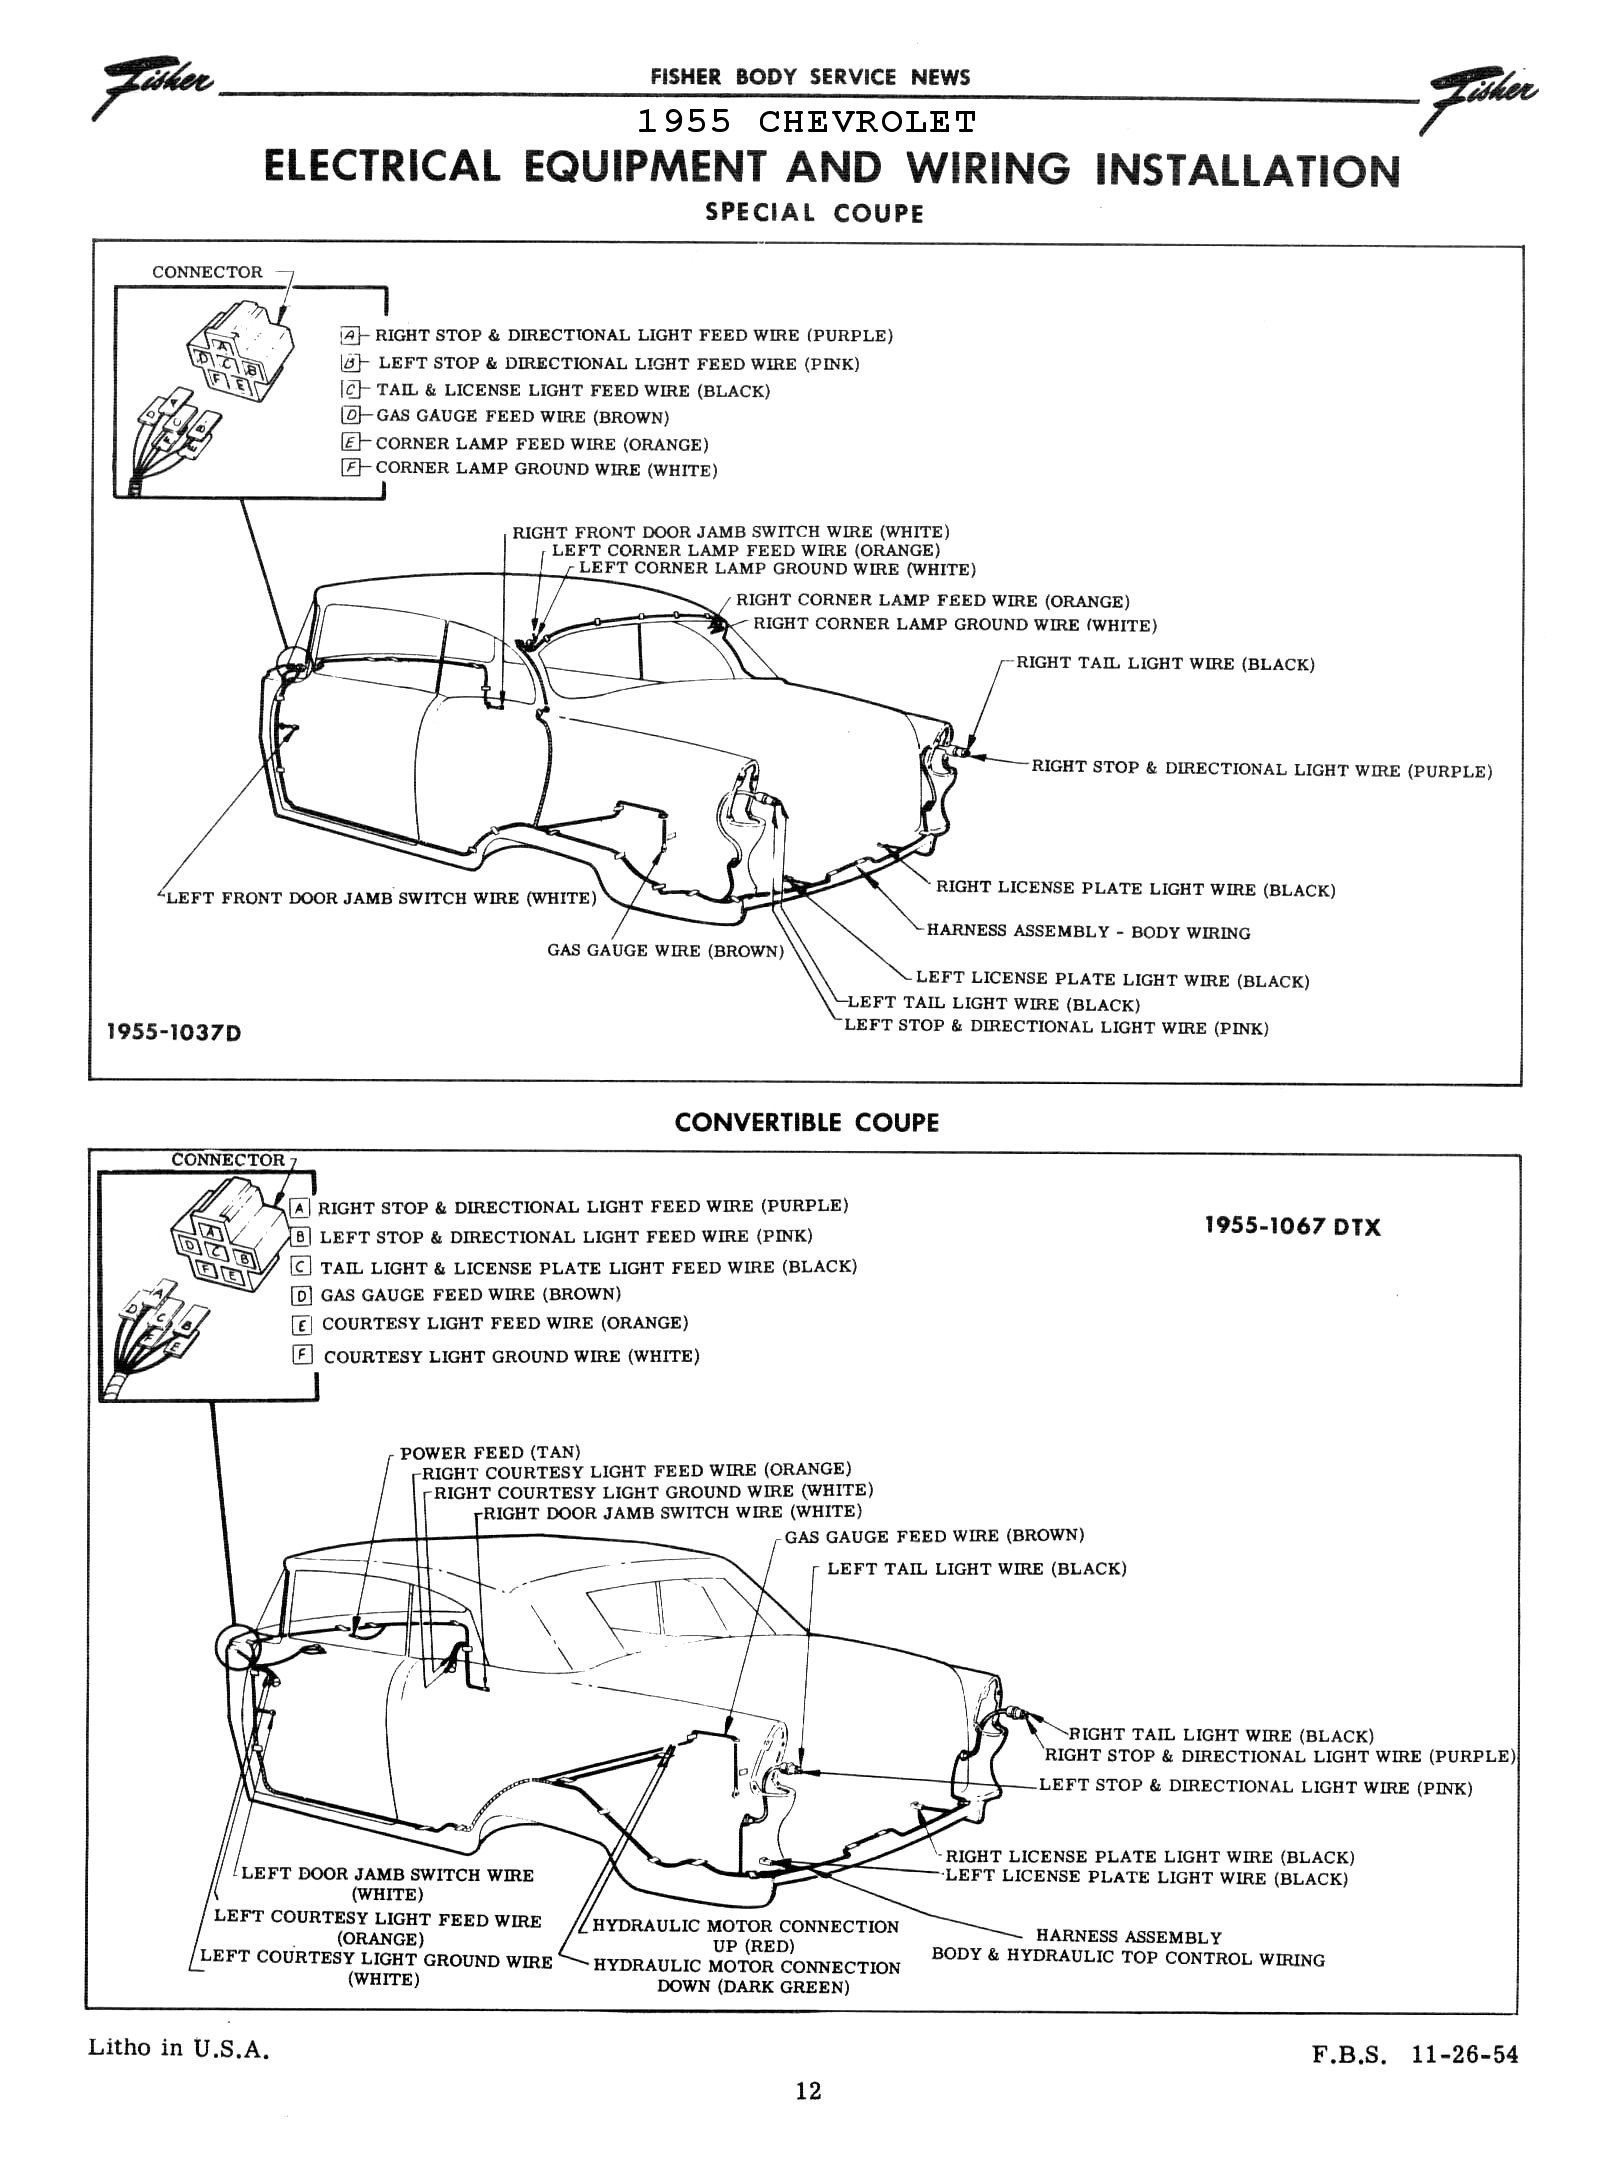 DIAGRAM] Wiring Diagram For 55 Chevy FULL Version HD Quality 55 Chevy -  TRANEWIRINGDIAGRAM.CLUB-RONSARD.FRClub Ronsard